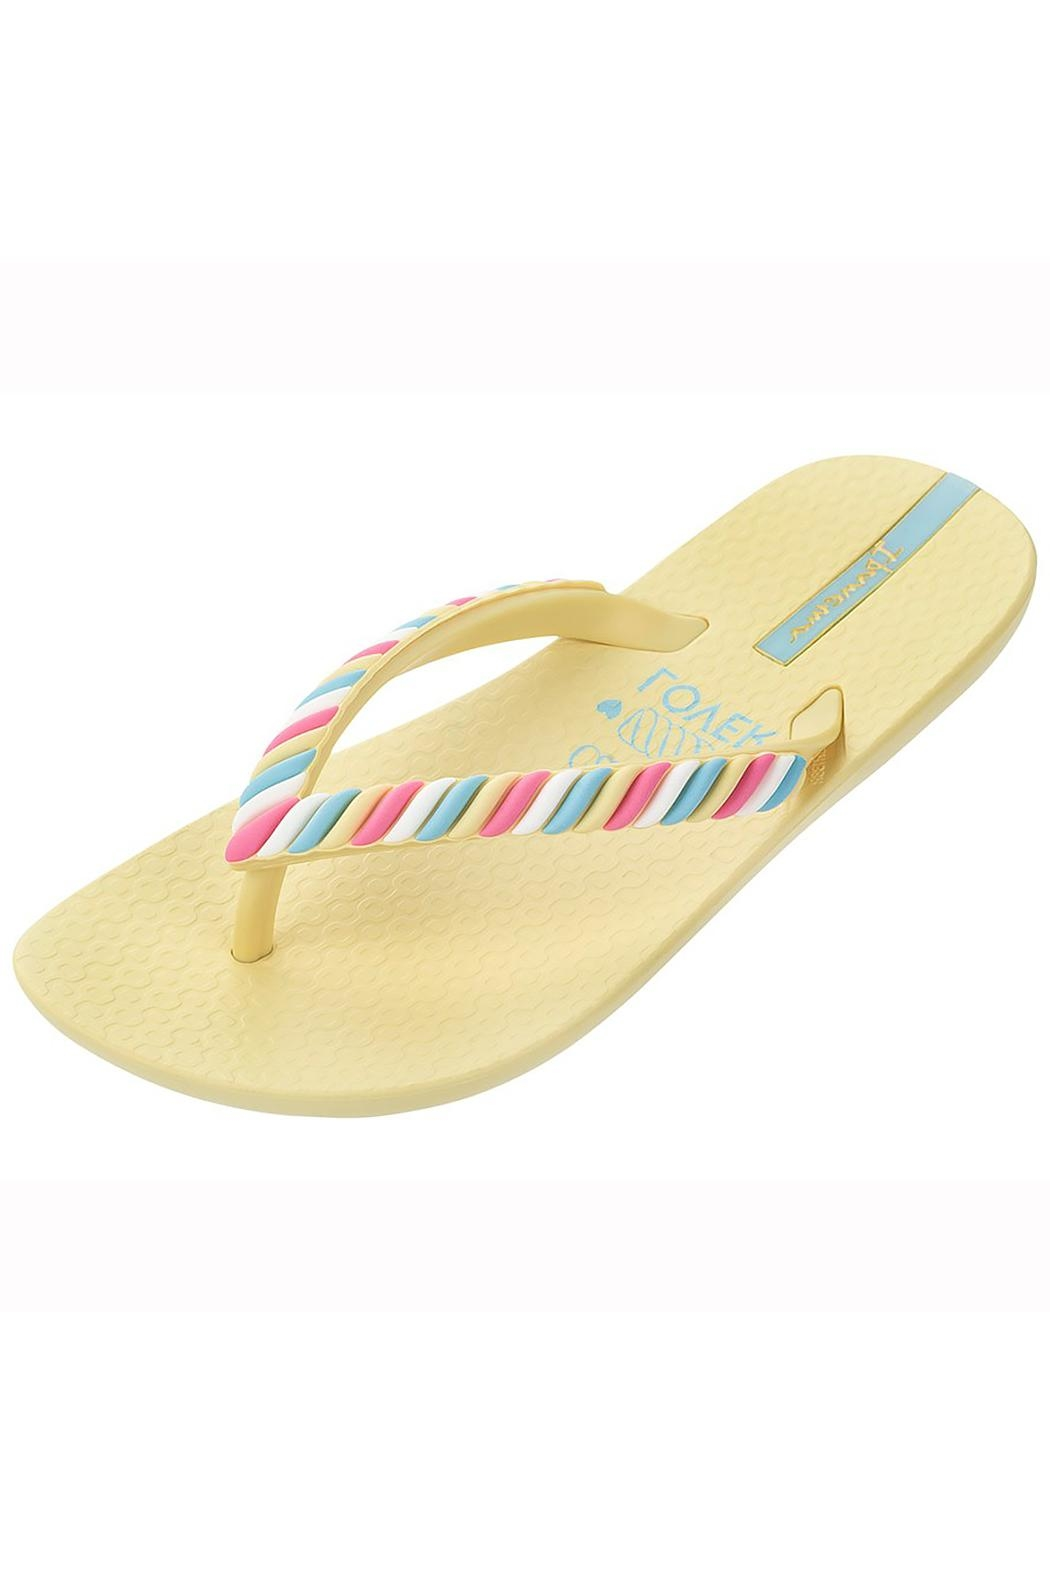 Ipanema Candy Lover Sandals - Main Image